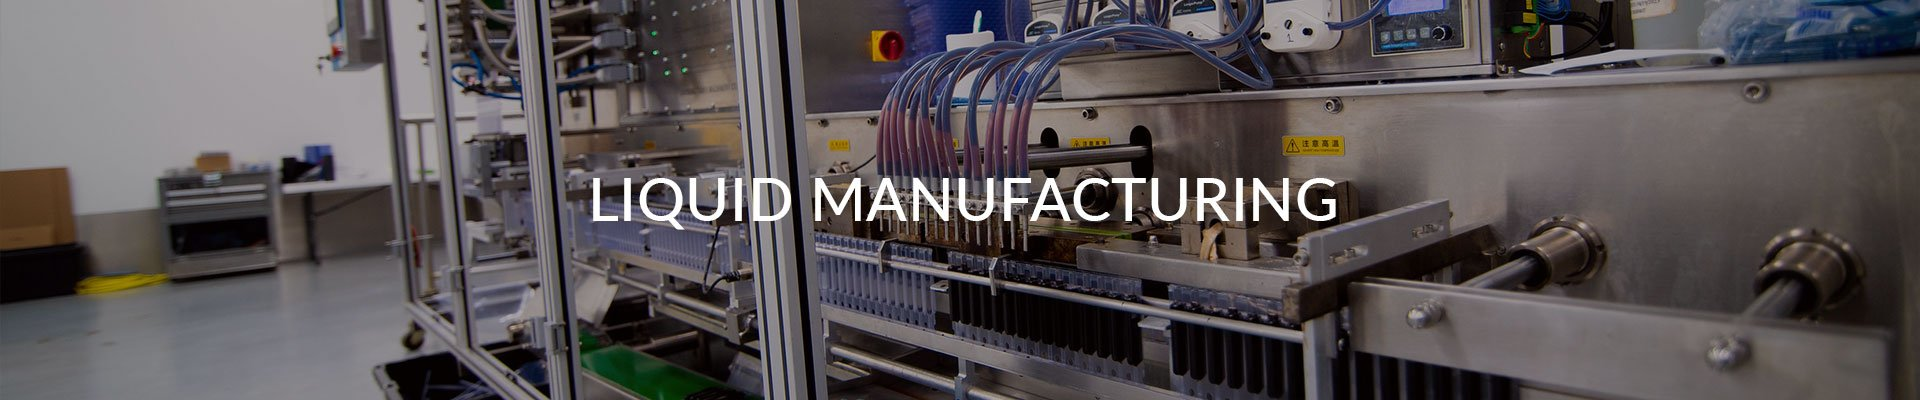 Liquid Manufacturing - Robinson Pharma, Inc